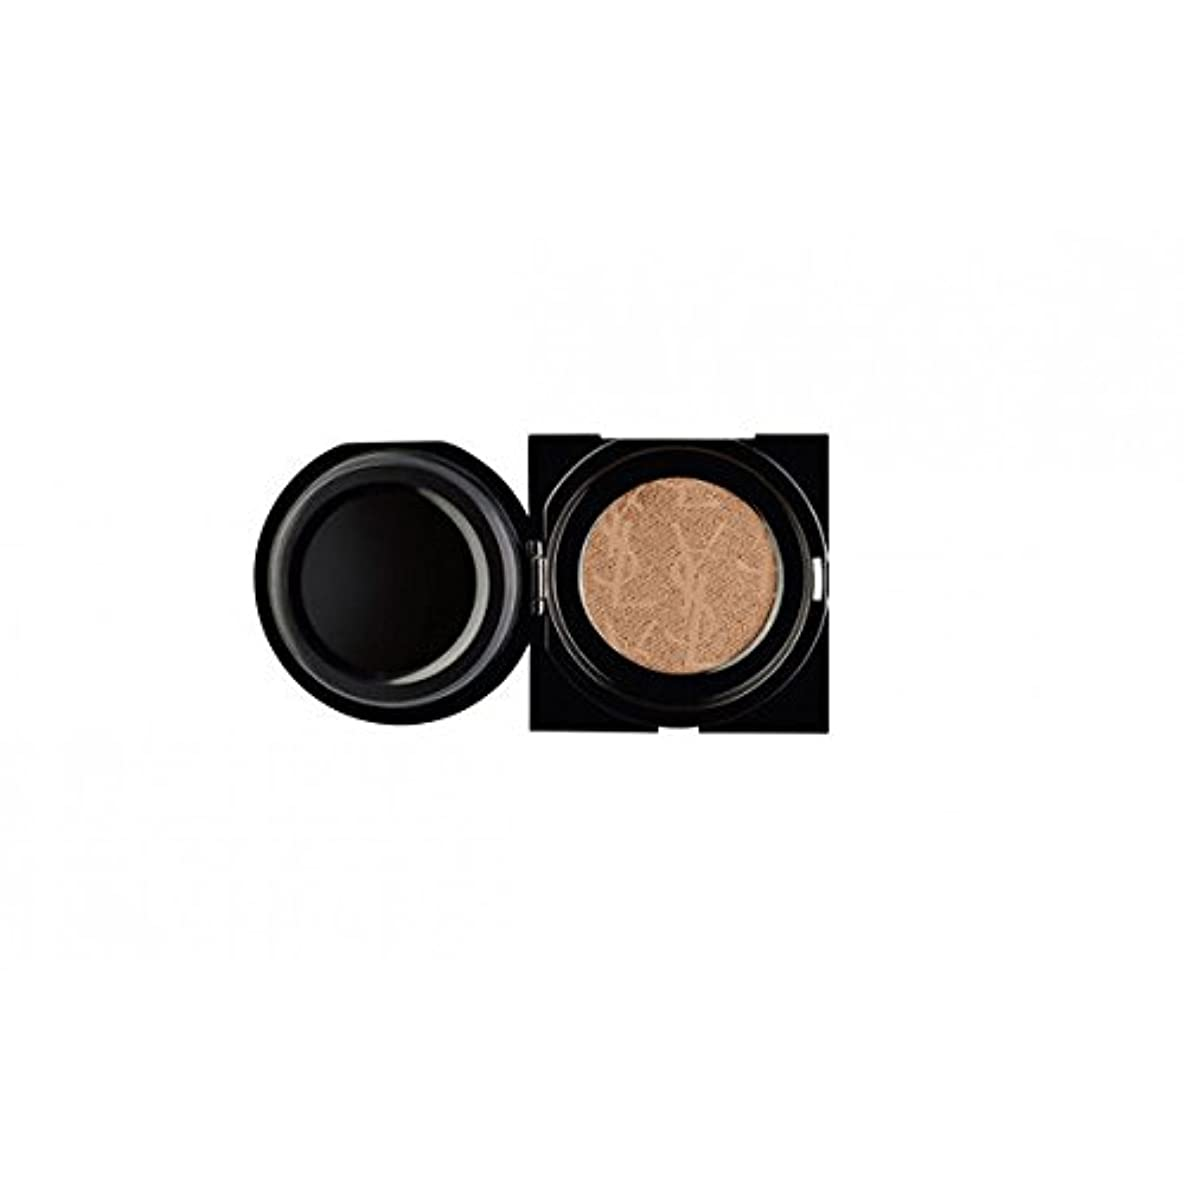 文句を言う解釈注意イヴサンローラン Touche Eclat Le Cushion Liquid Foundation Compact Refill - #B60 Amber 15g/0.53oz並行輸入品